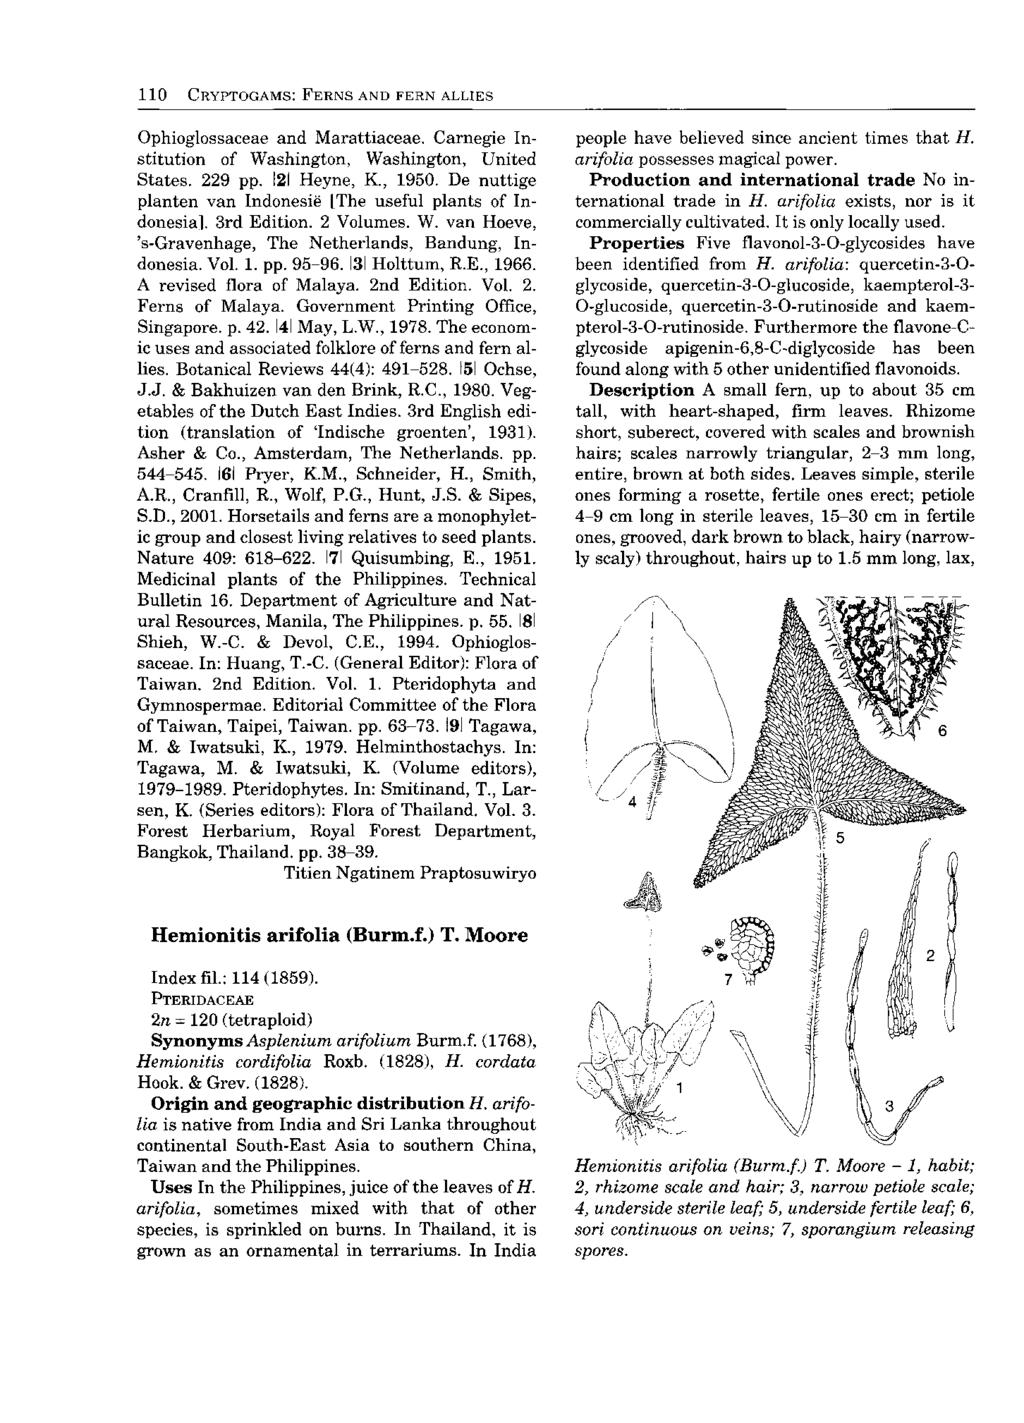 R Backhuys Publishers Leiden Plant Resources Of South East Asia 3 Bike Tool 15 In 1 With Chain Cutter United Hijau 110 Cryptogams Ferns And Fern Allies Ophioglossaceae Marattiaceae Carnegie Institution Washington